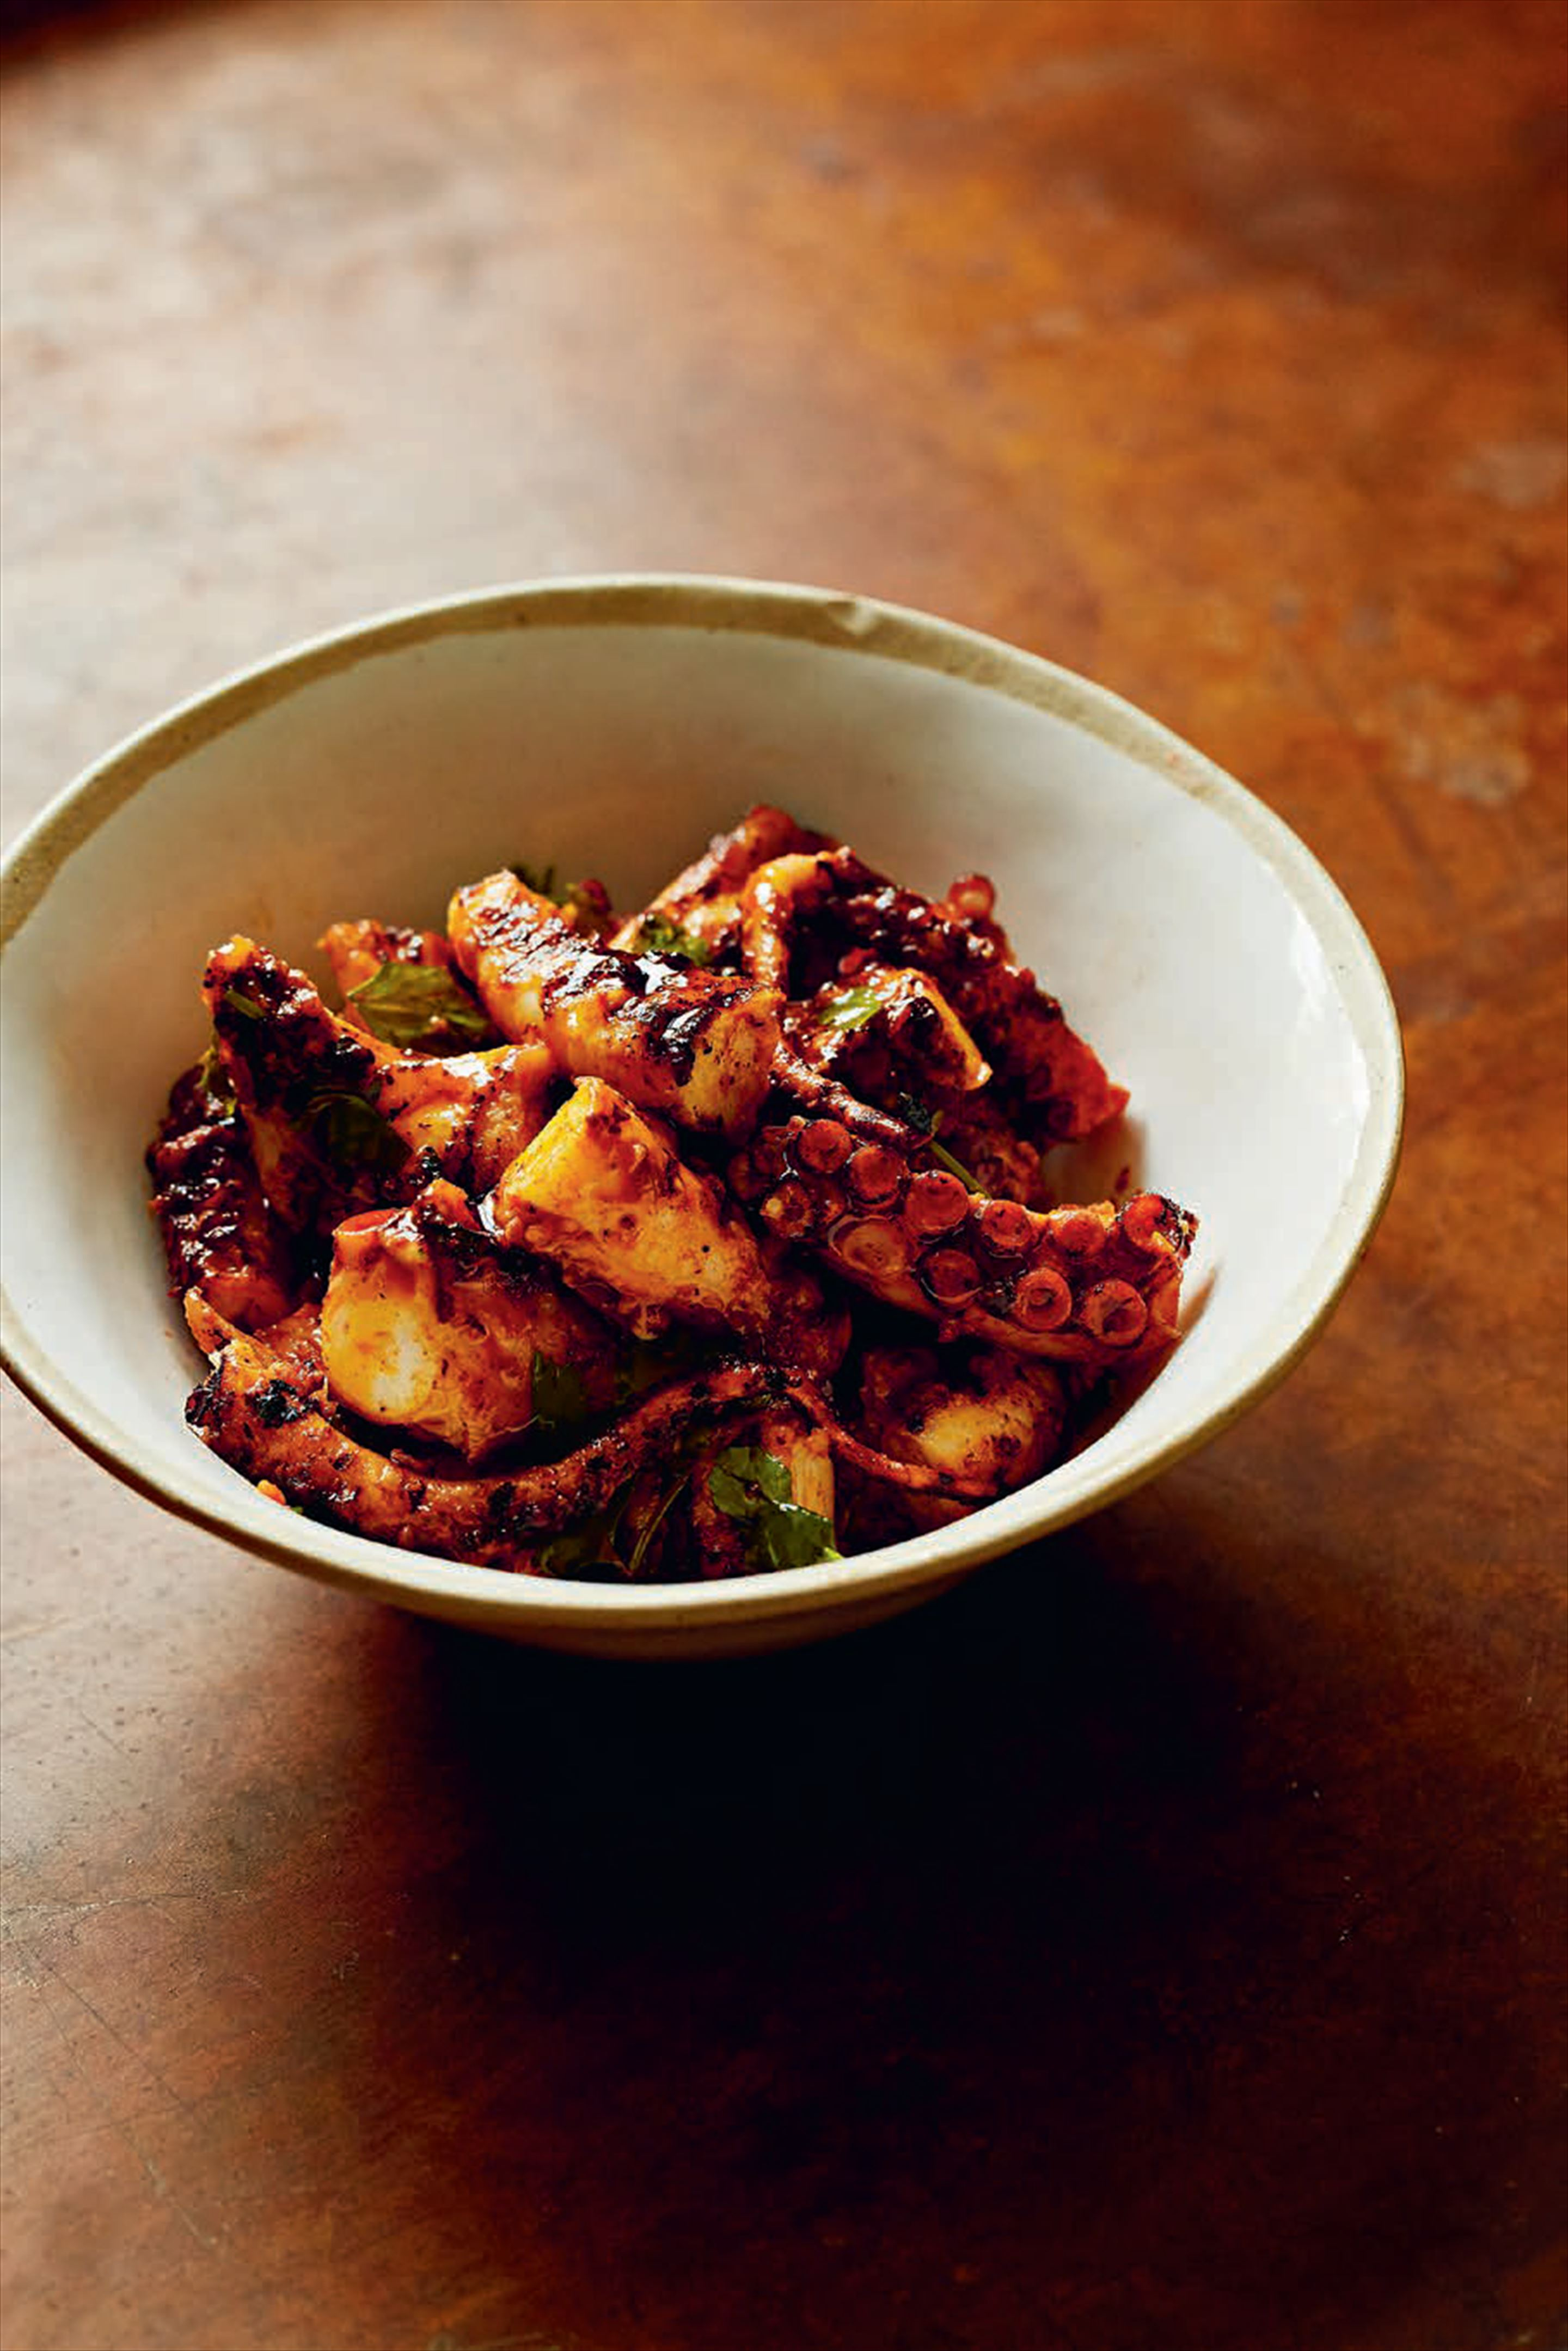 Roasted octopus with smoked paprika, parsley & lemon